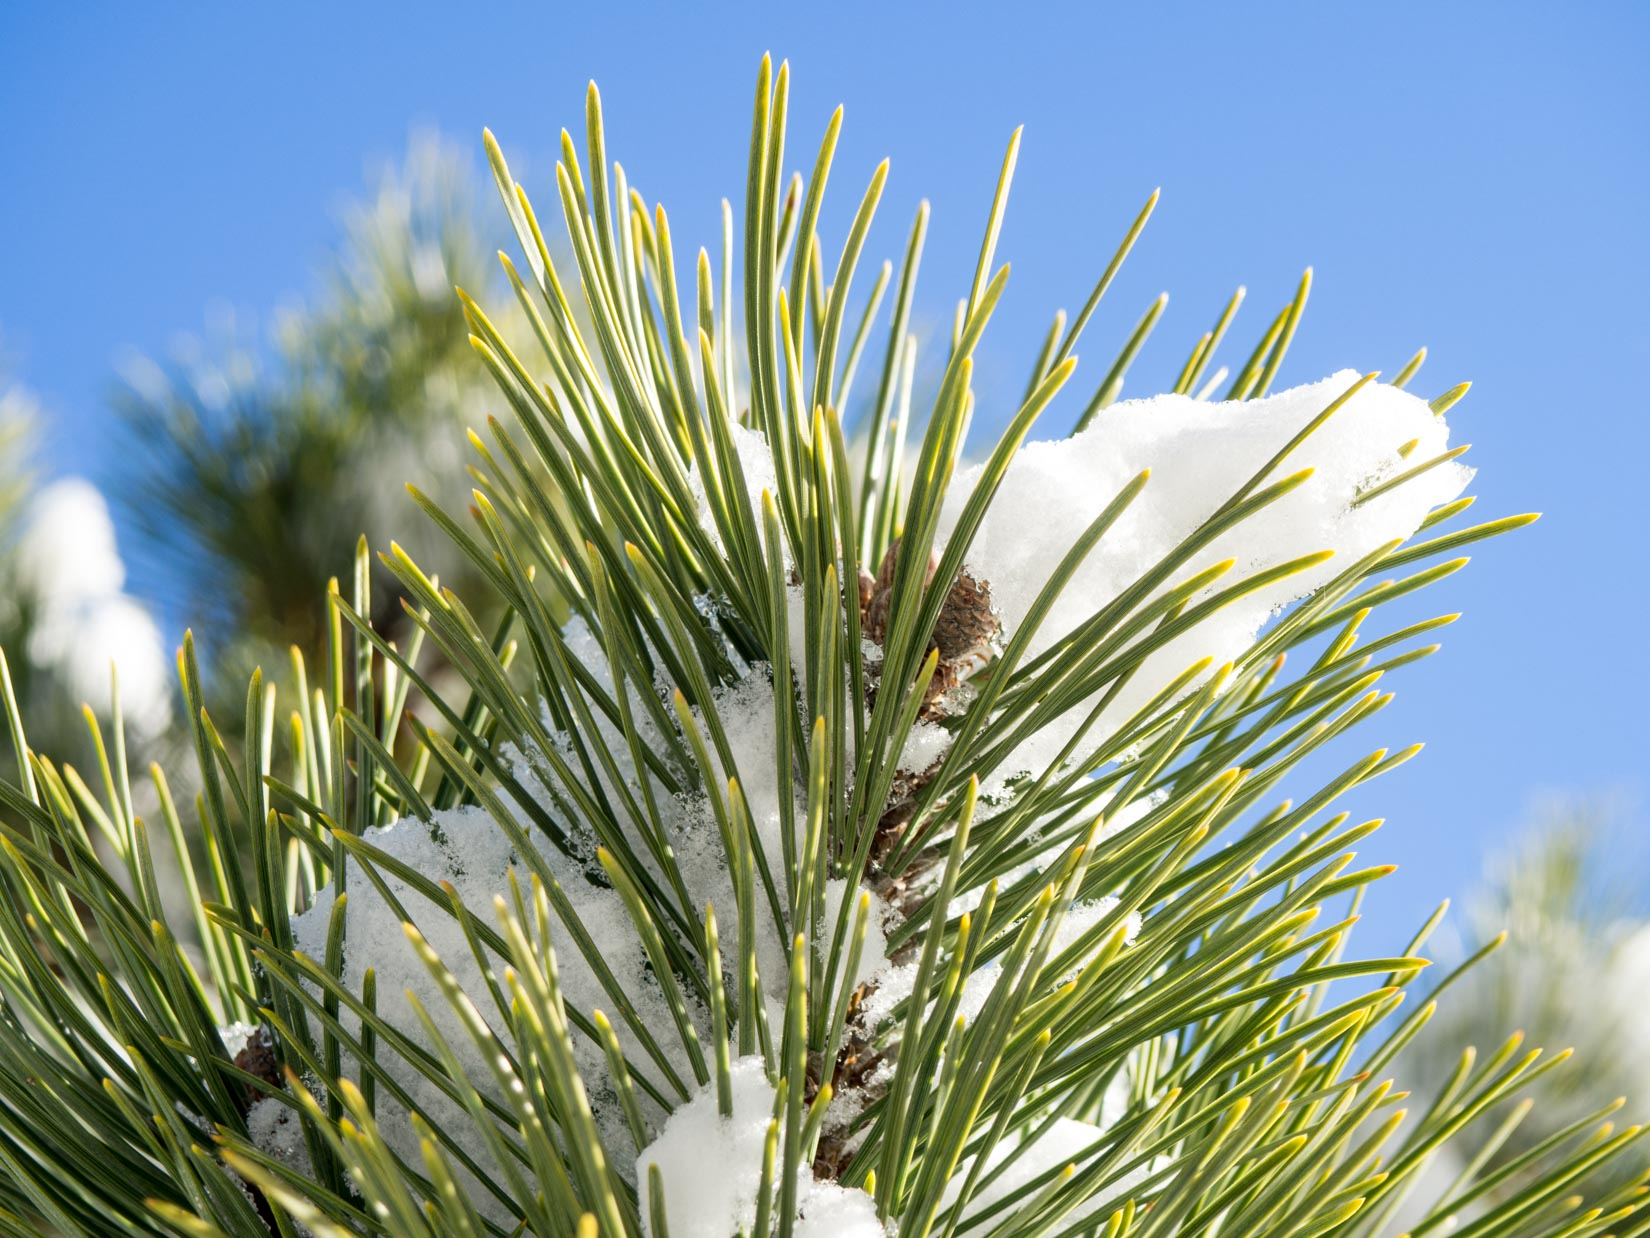 Pine Leaves Covered in Snow Under Blue Sky